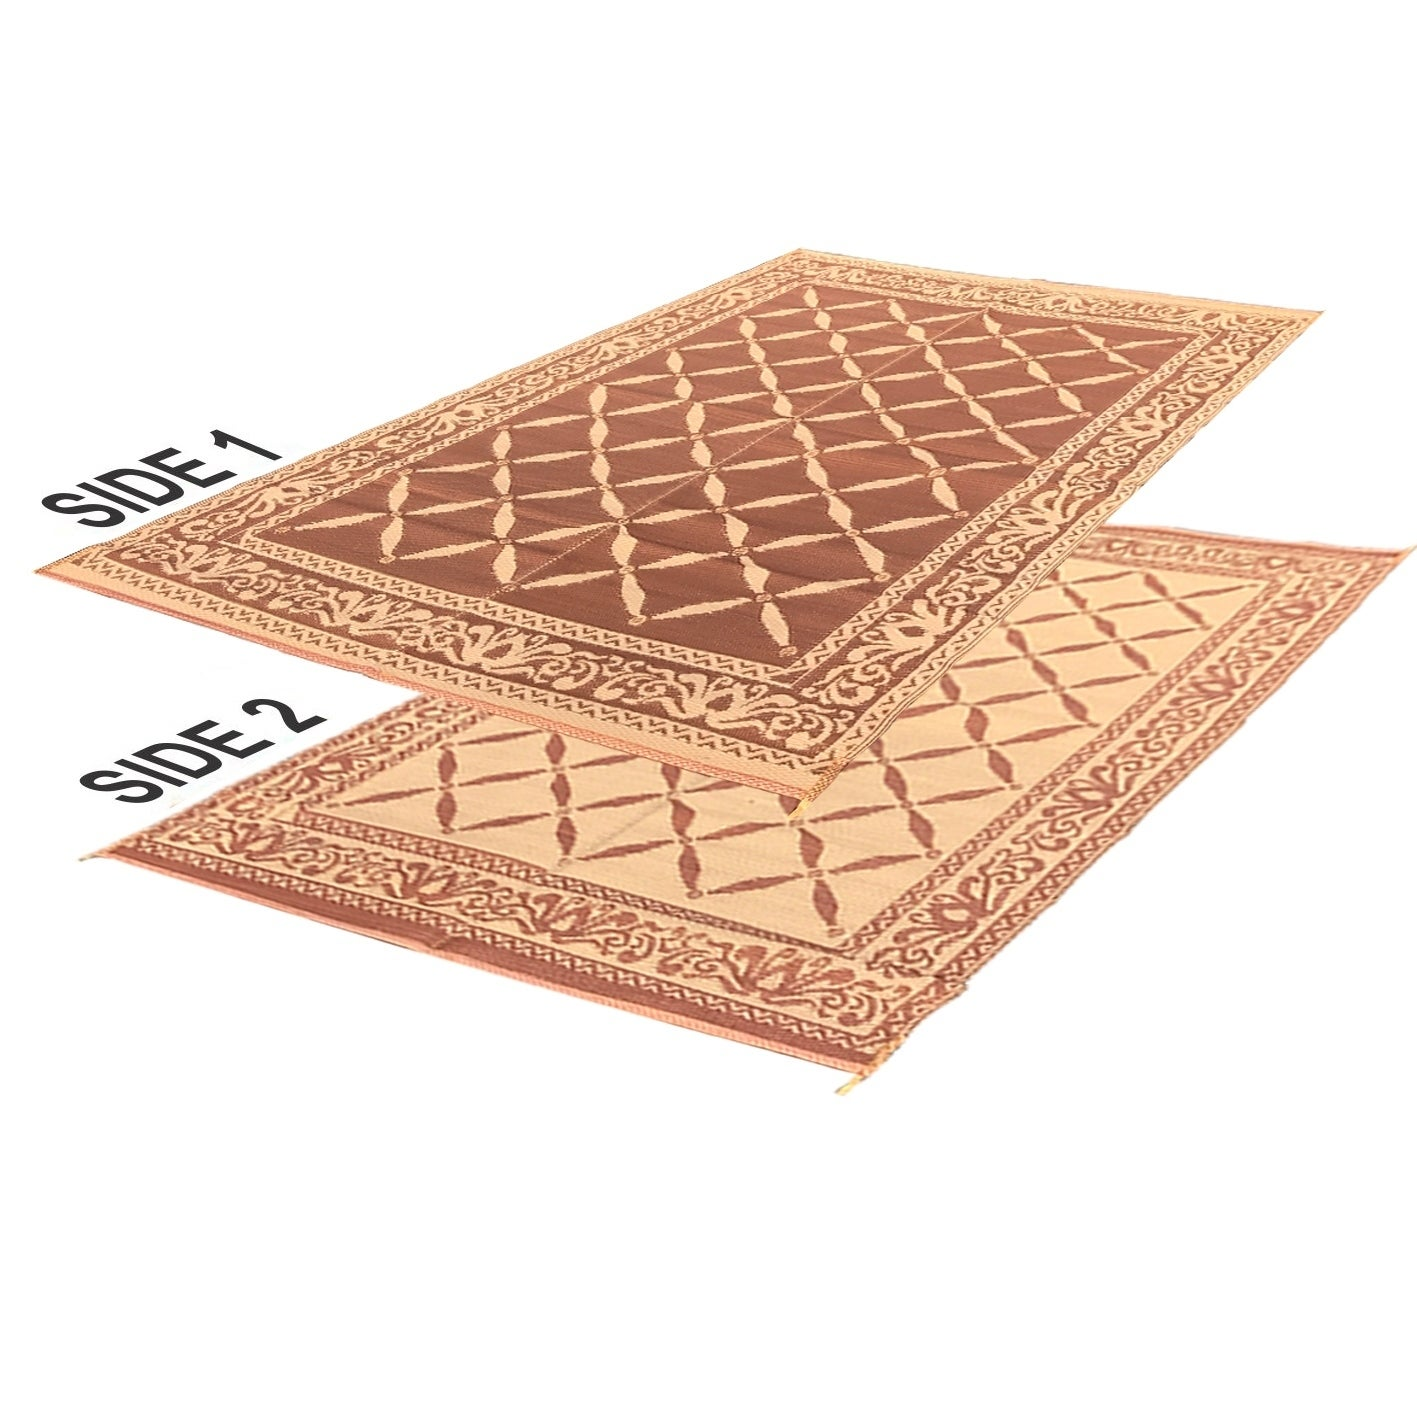 RV Camping Mats 9 x 12 Outdoor Patio Mat Reversible RV Mat